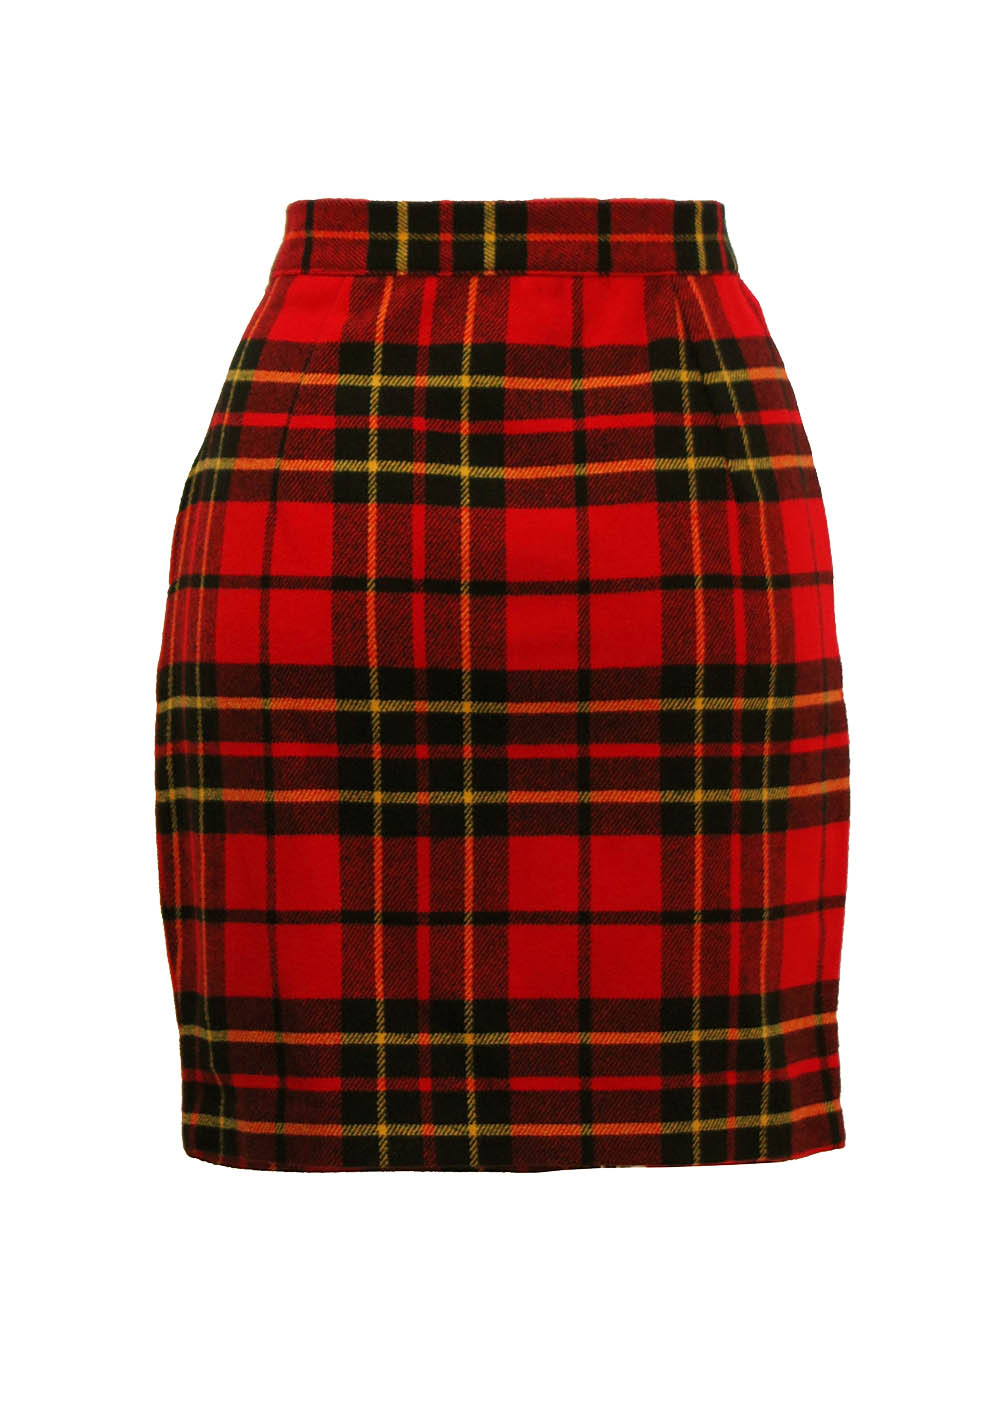 Tartan Skirts Get pretty in plaid this season and channel your inner 90's child with our selection of women's tartan skirts. From pleated to ruffled, bodycon to A-line, we have all styles and silhouettes to fit every figure and occasion.